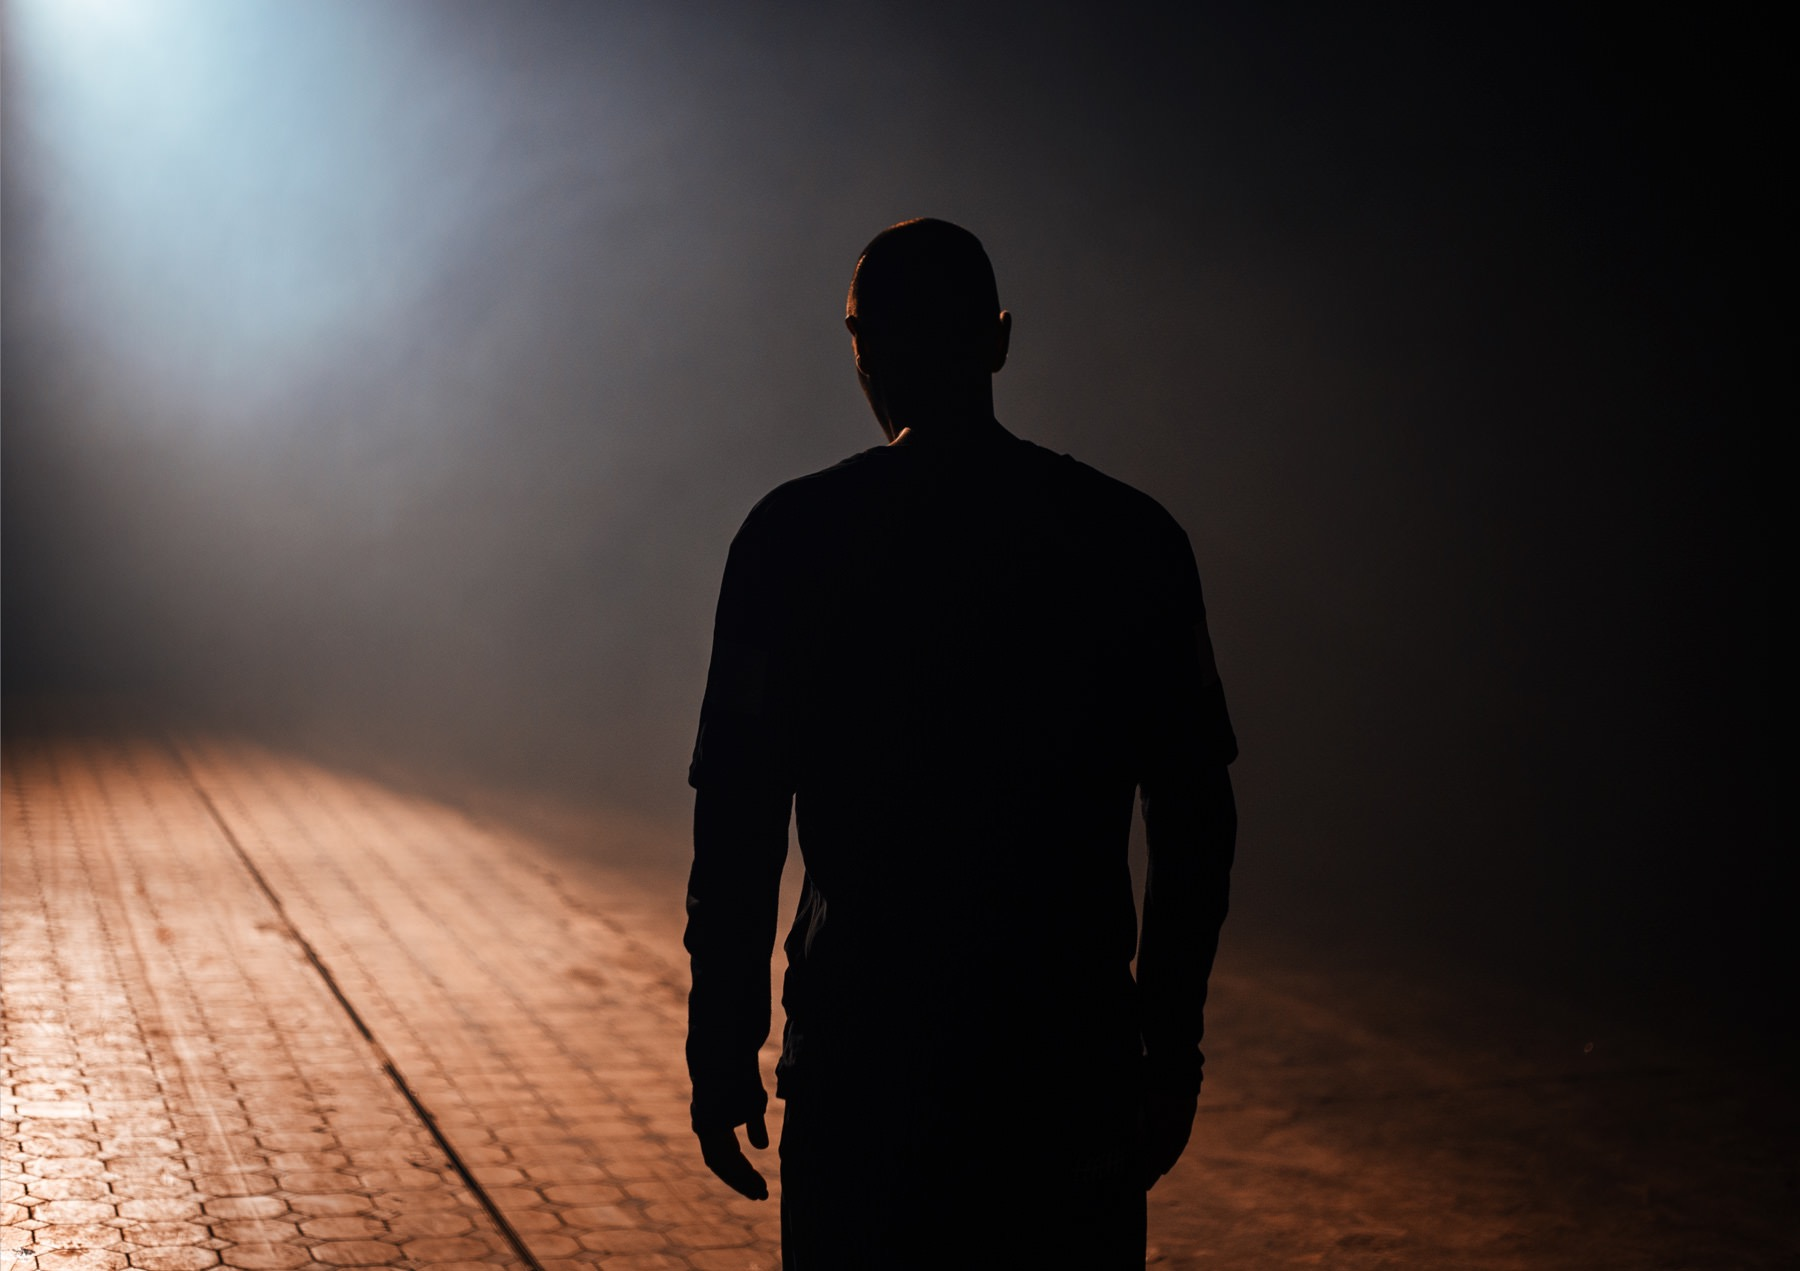 ­photo, photos, photography, photographer, photographers, man, men, backlight, backlit, silhouette, dark, standing, blur, perspective, spotlight, nighttime, night